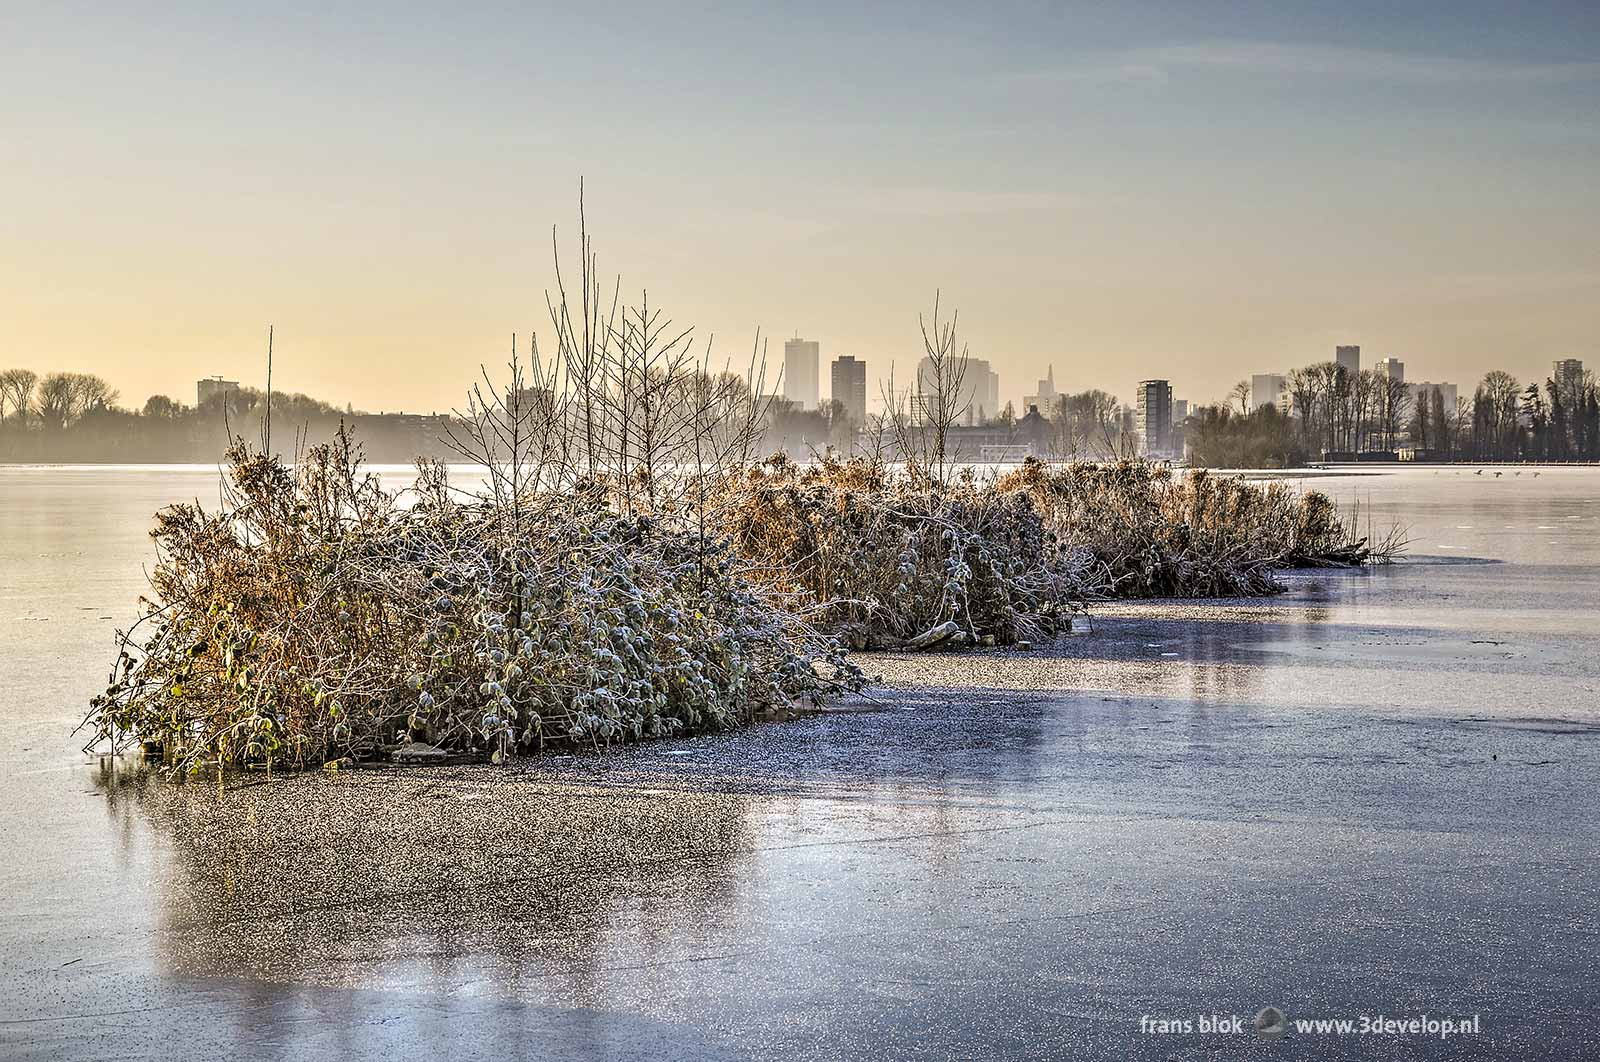 Photo of a number of little islands, with frost-covered vegetation in frozen over Lake Kralingen with the Rotterdam skyline as a backdrop